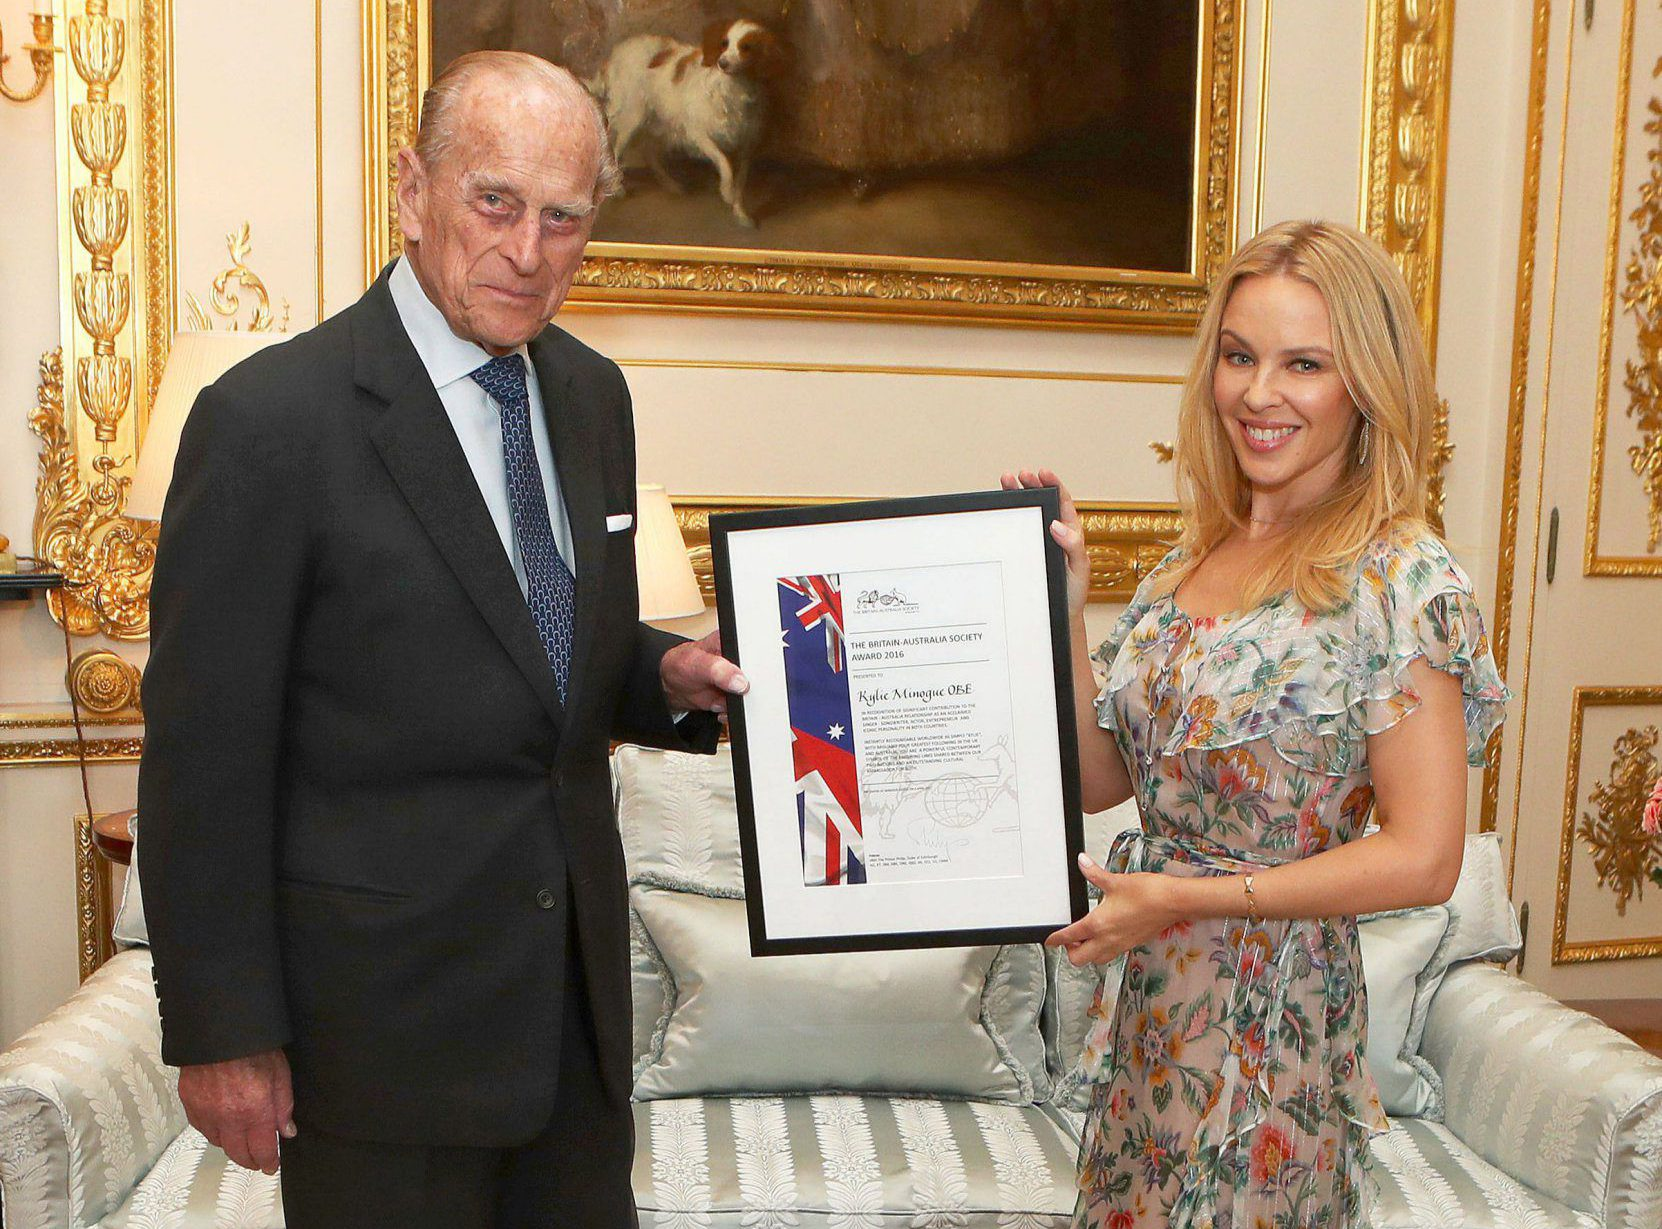 Pop royalty meets for-real royalty: Kylie Minogue meets Prince Philip for Britain-Australia Award